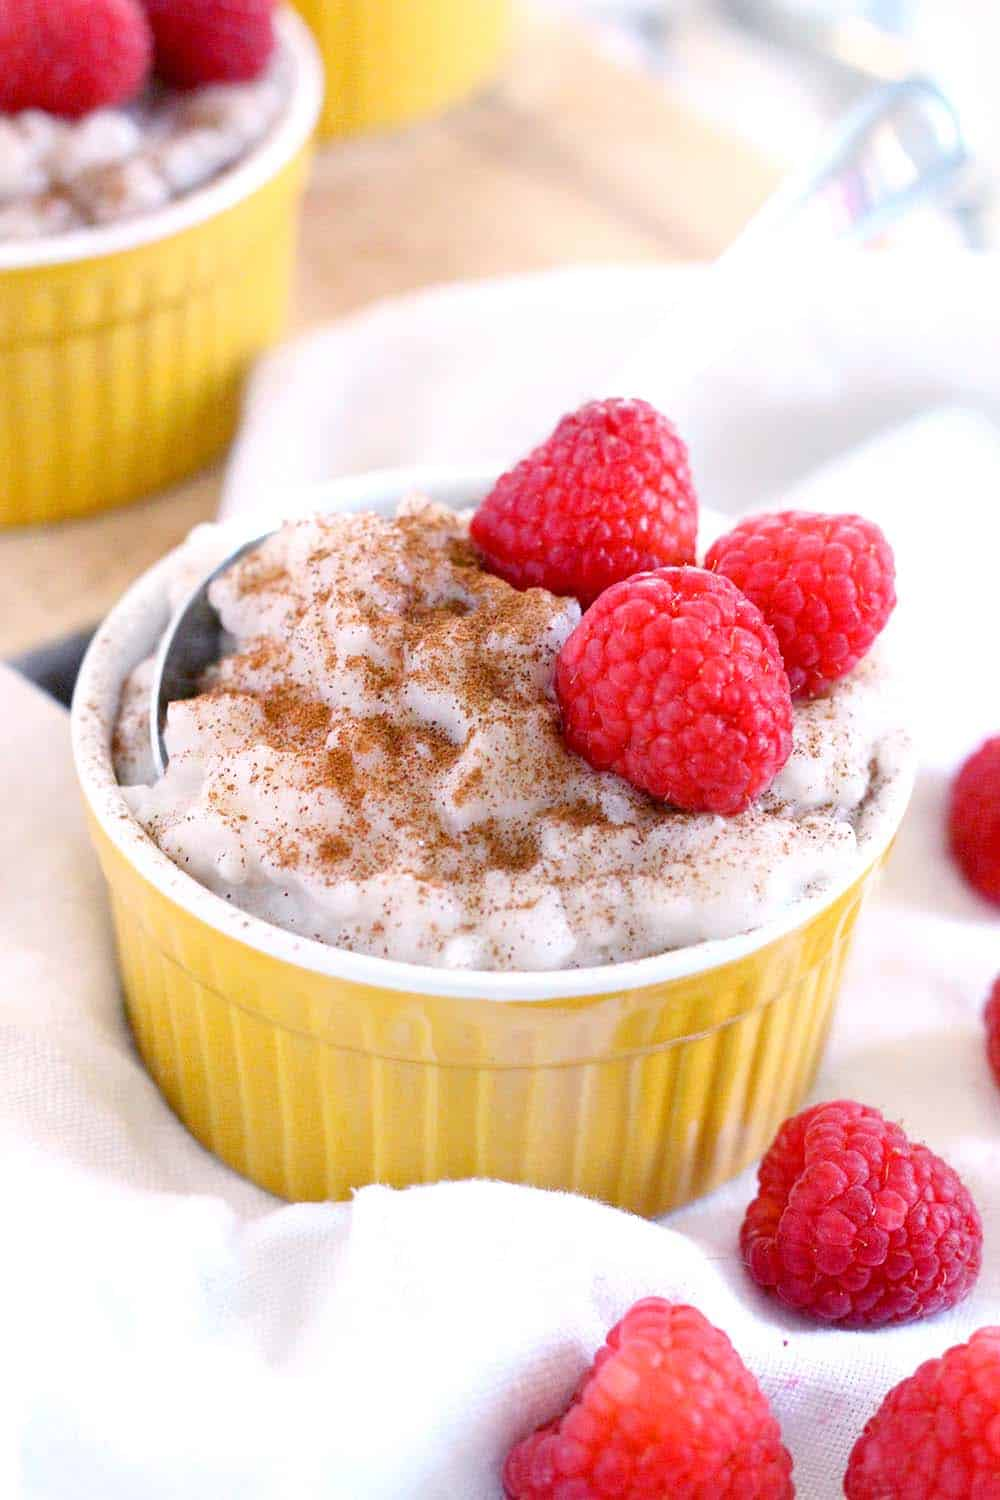 This french vanilla dairy free rice pudding recipe uses only TWO INGREDIENTS- dairy free coffee creamer and rice! It's served cold, so it's the perfect make-ahead dessert.